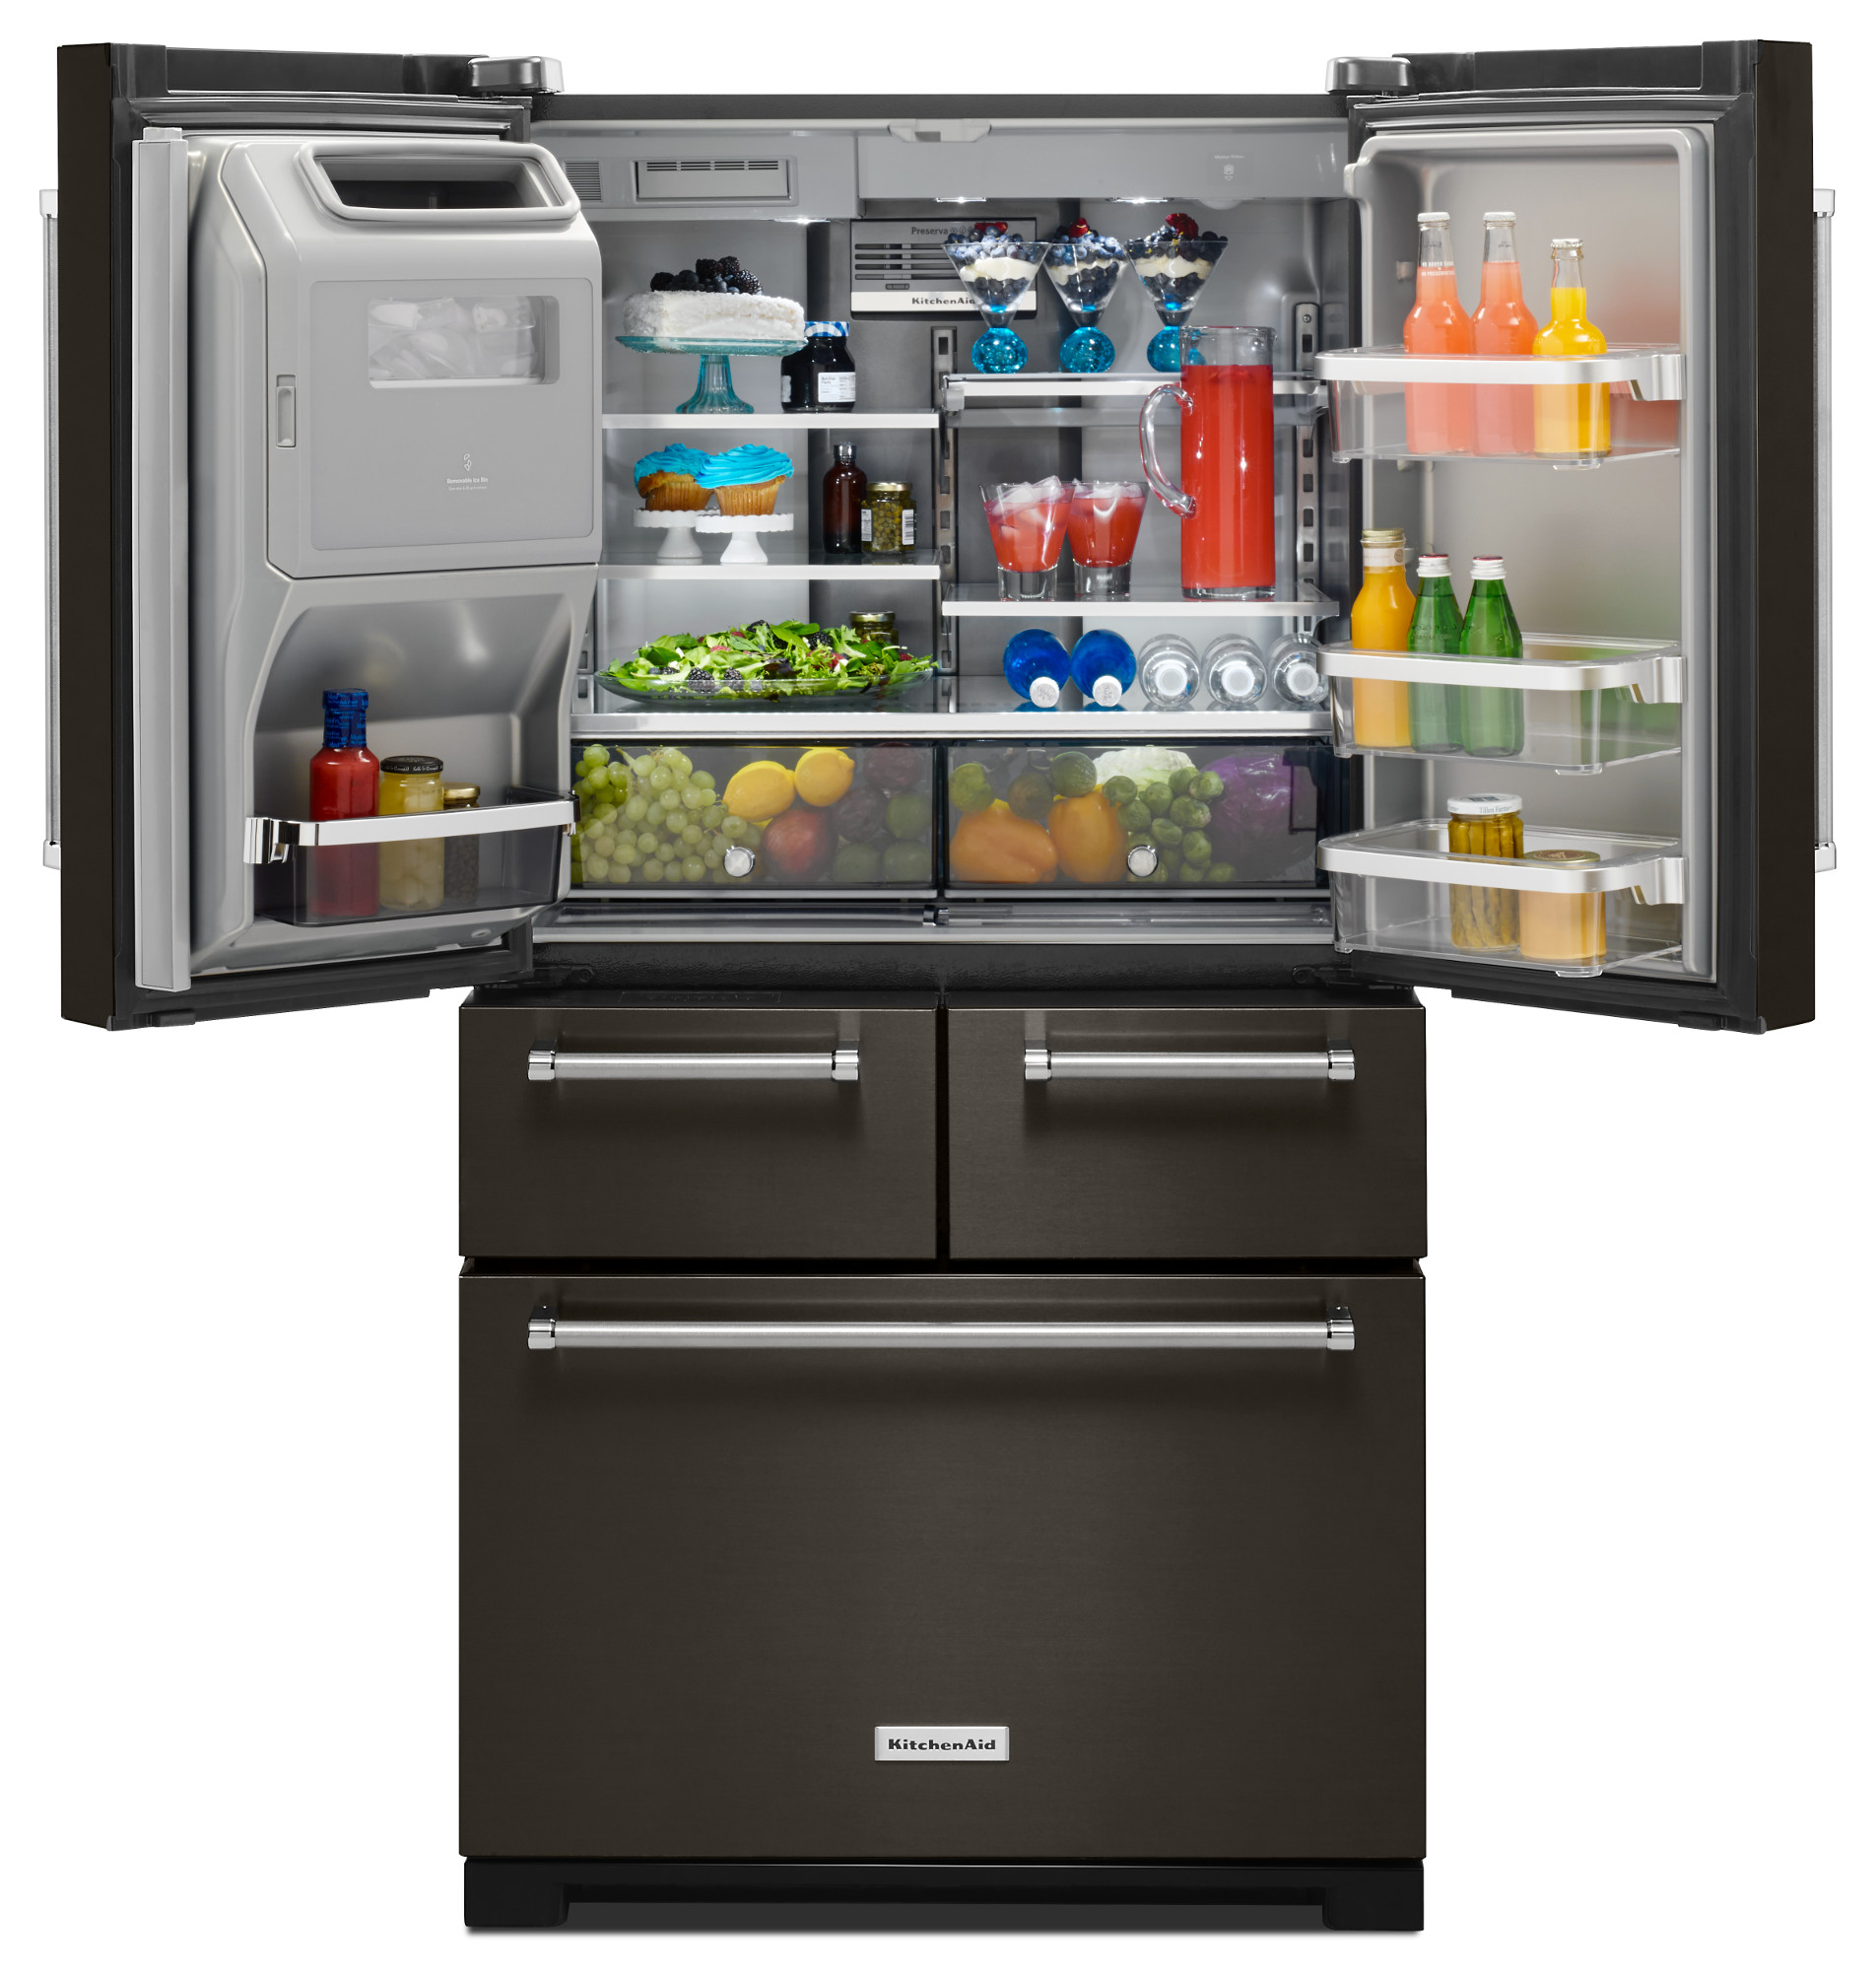 "KitchenAid KRMF706EBS 25.8 cu. ft. 36"" Multi-Door Freestanding Refrigerator - Black Stainless"